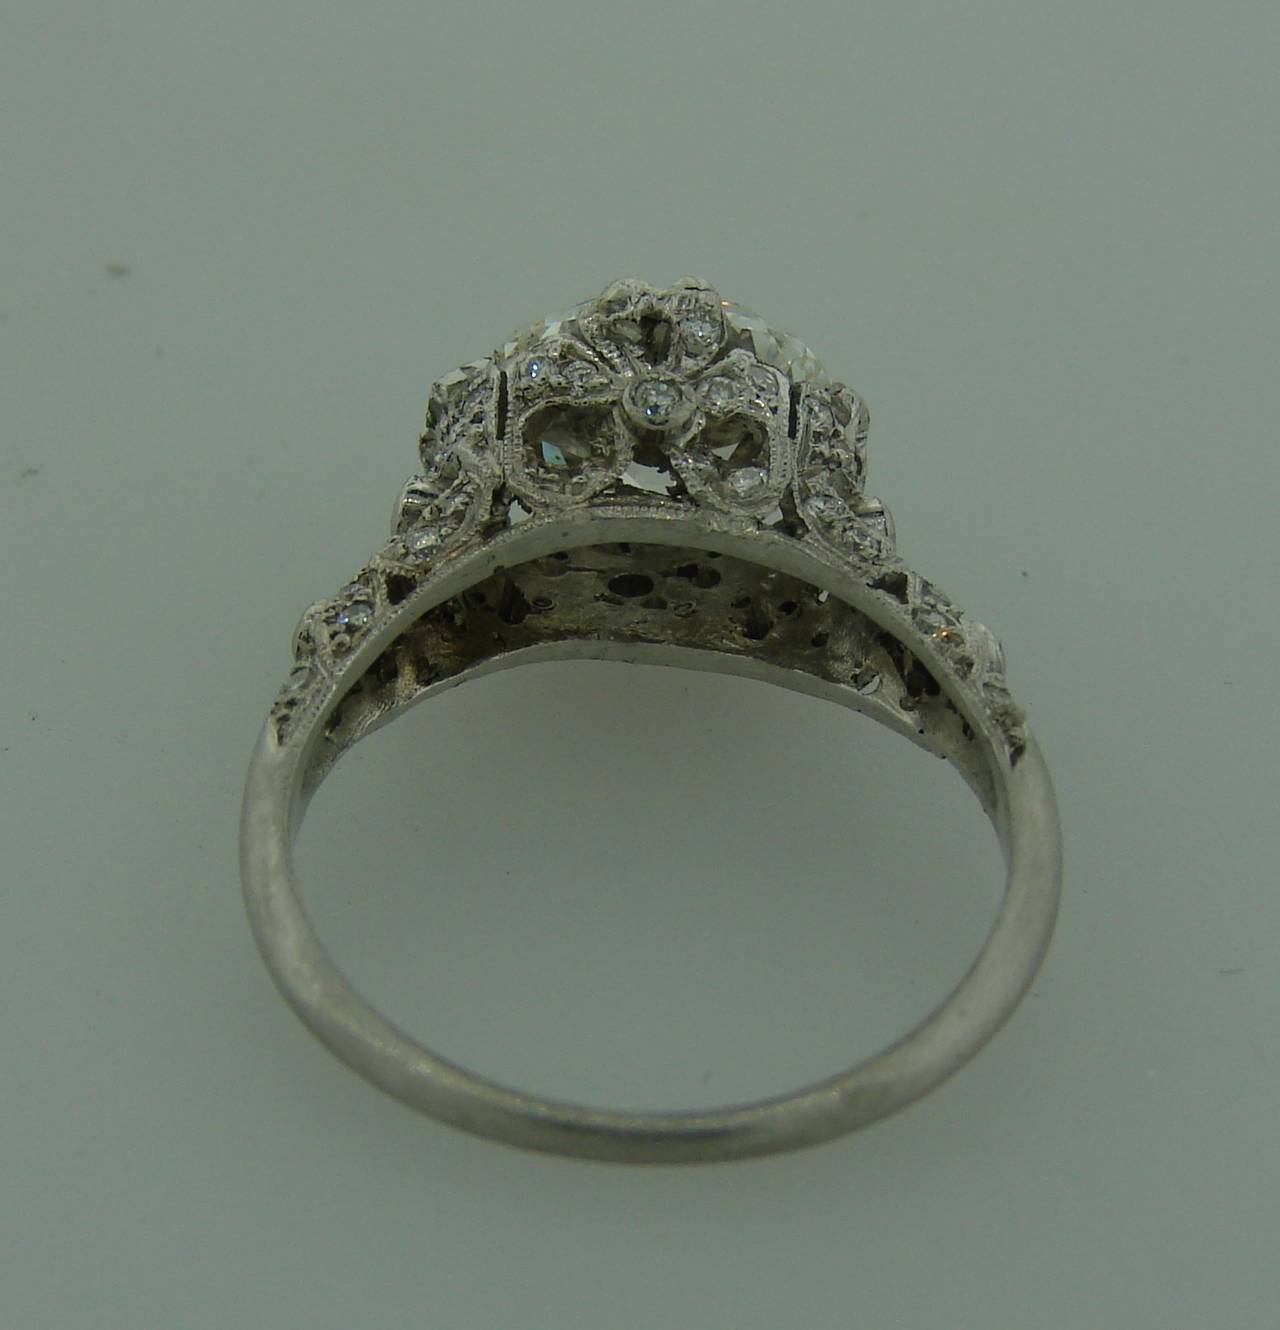 3.02 Carat GIA Cert Cushion Cut Diamond Platinum Engagement Ring circa 1920s For Sale 5